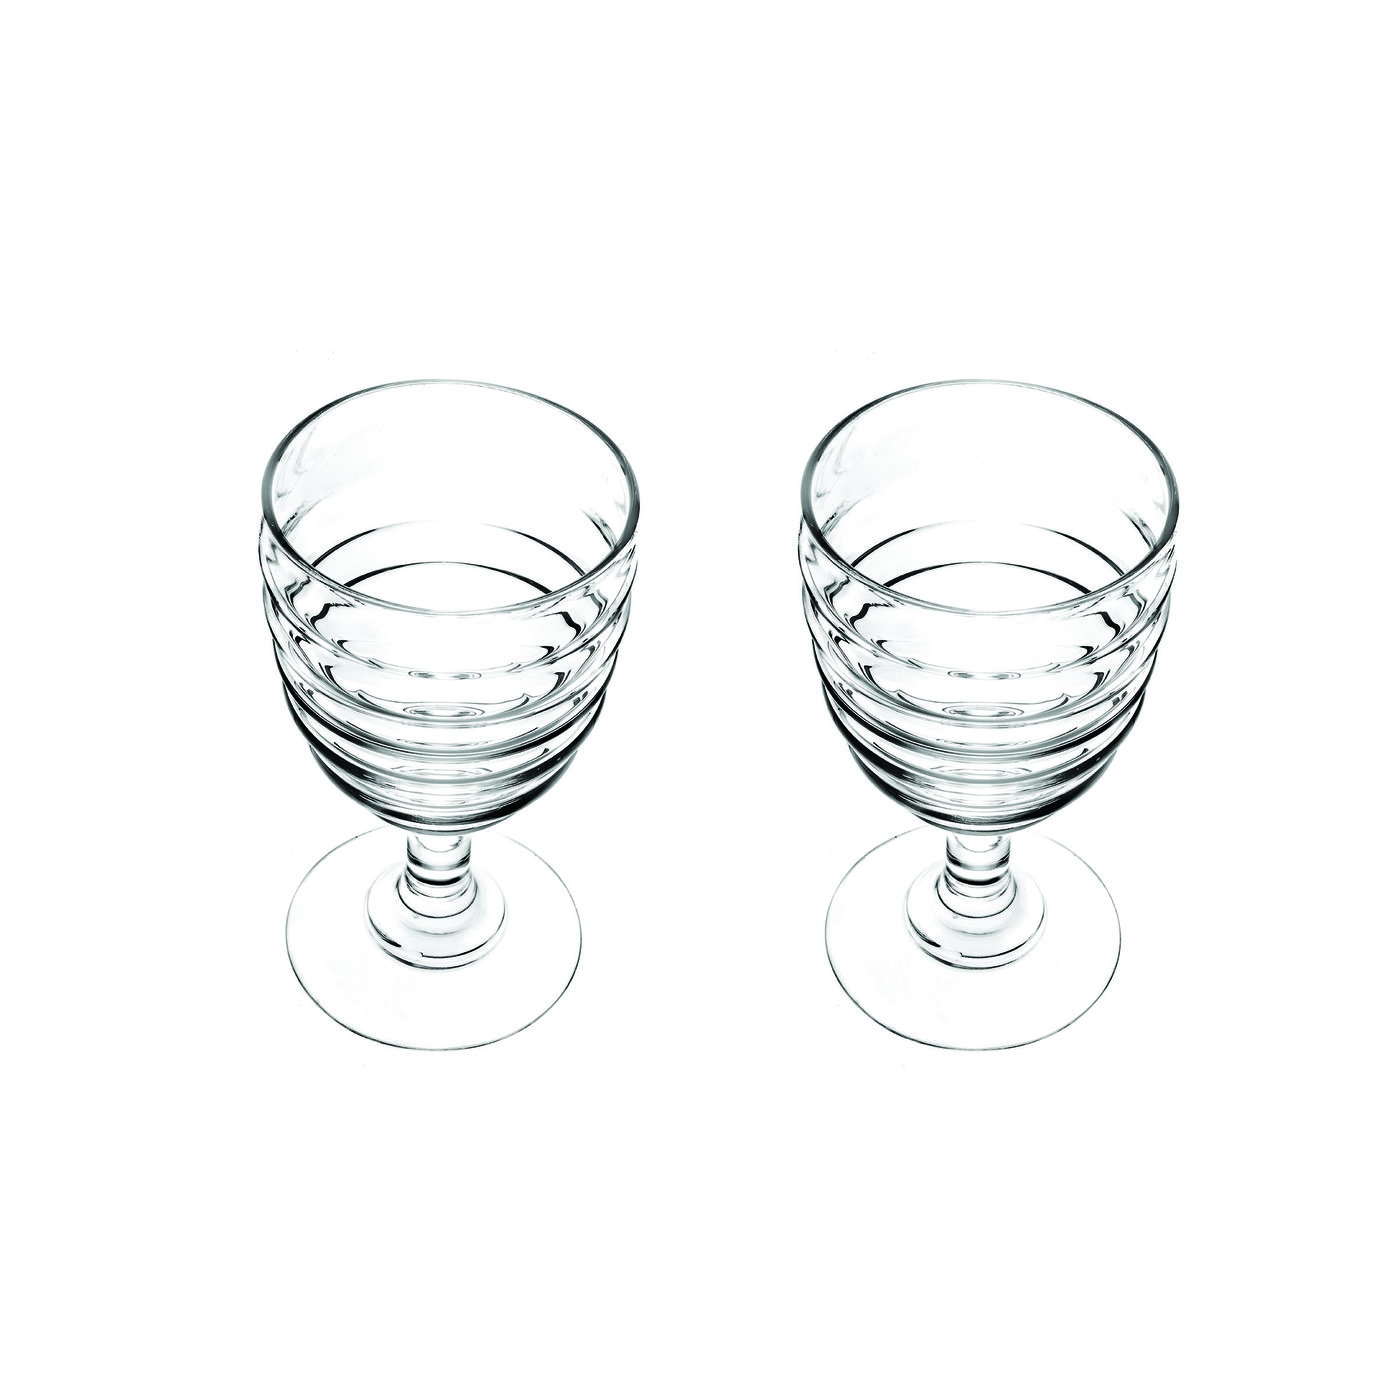 Portmeirion Sophie Conran Glassware Set of 2 Wines image number 0